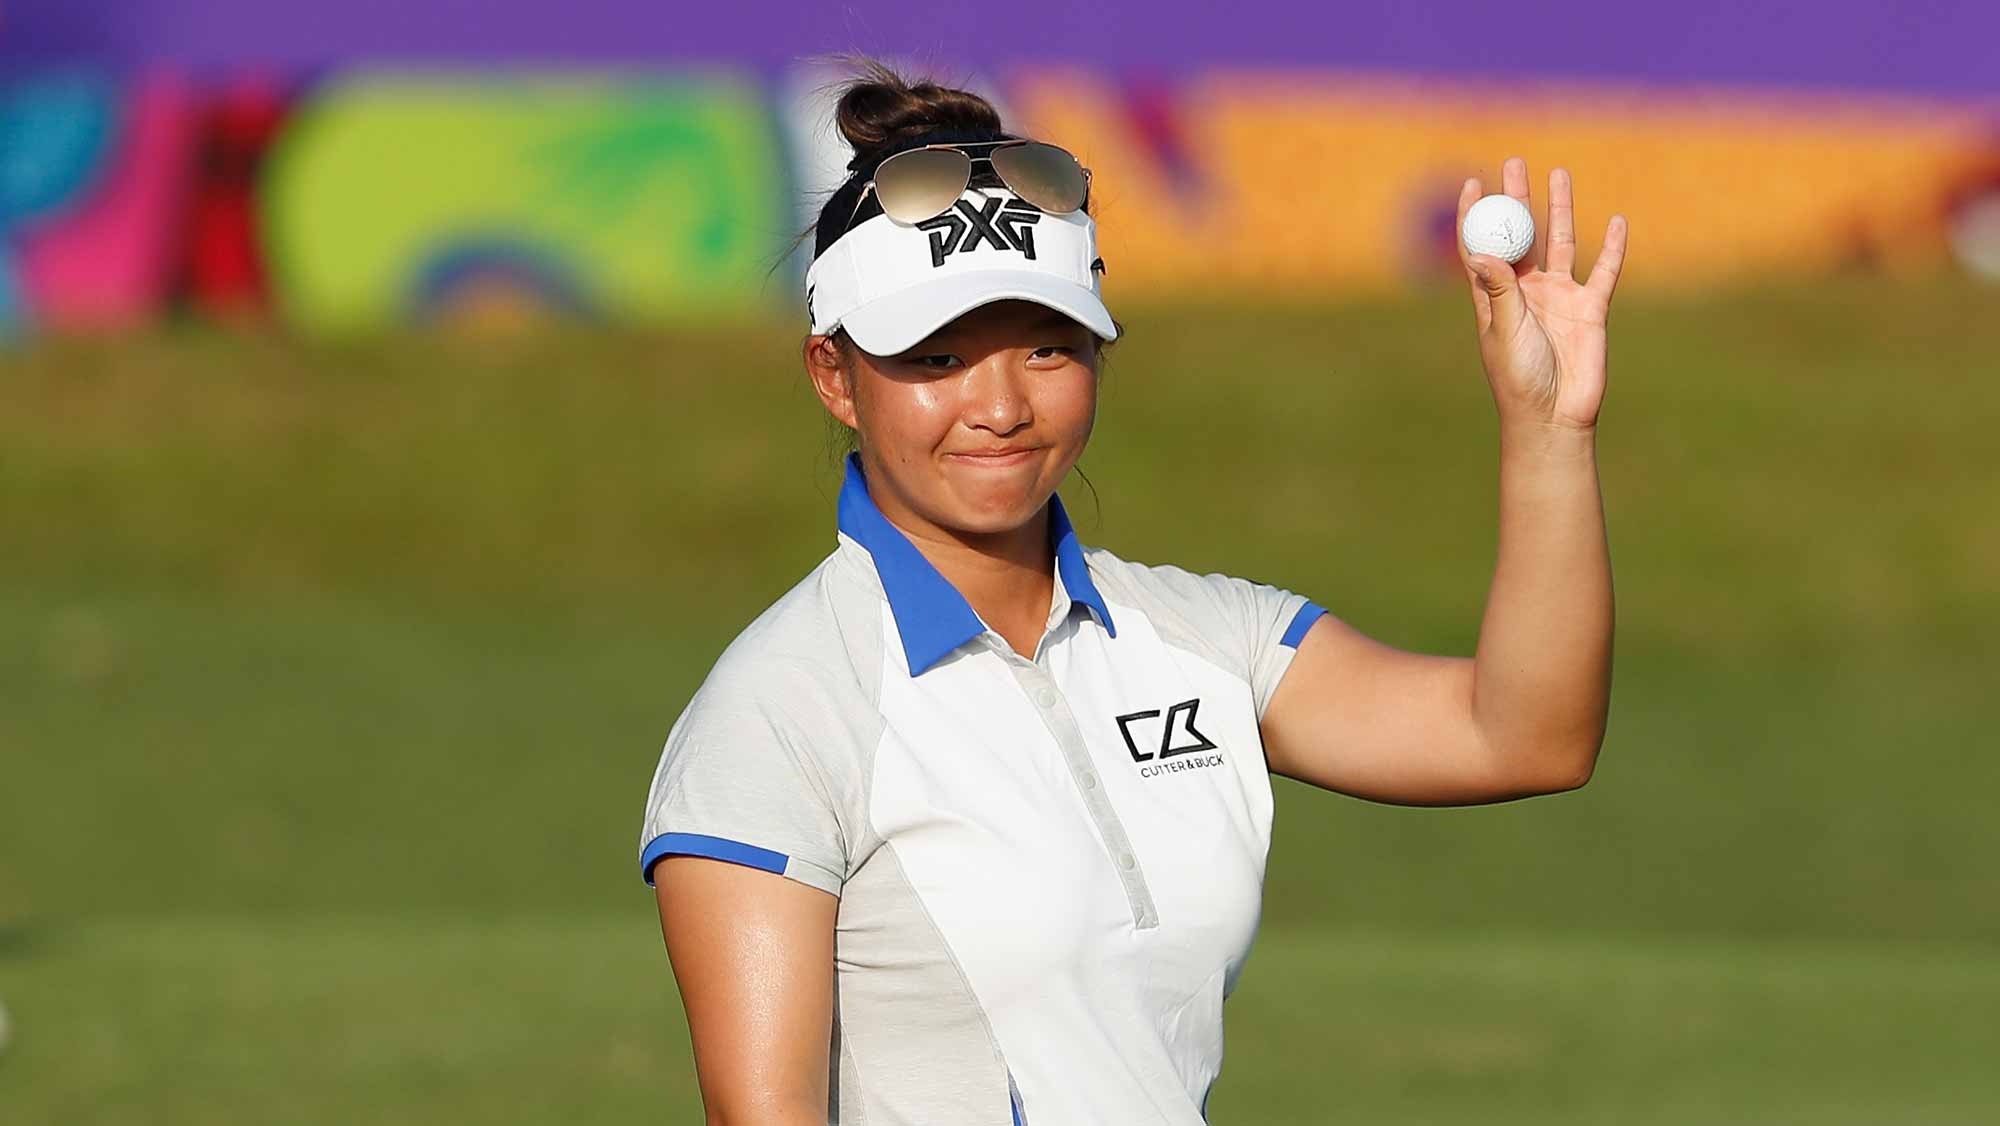 Megan Khang of United States acknowledges to the spectators at the eighteen hole during the second round of the Swinging Skirts LPGA Taiwan Championship at Ta Shee Golf & Country Club on October 26, 2018 in Taoyuan, Chinese Taipei